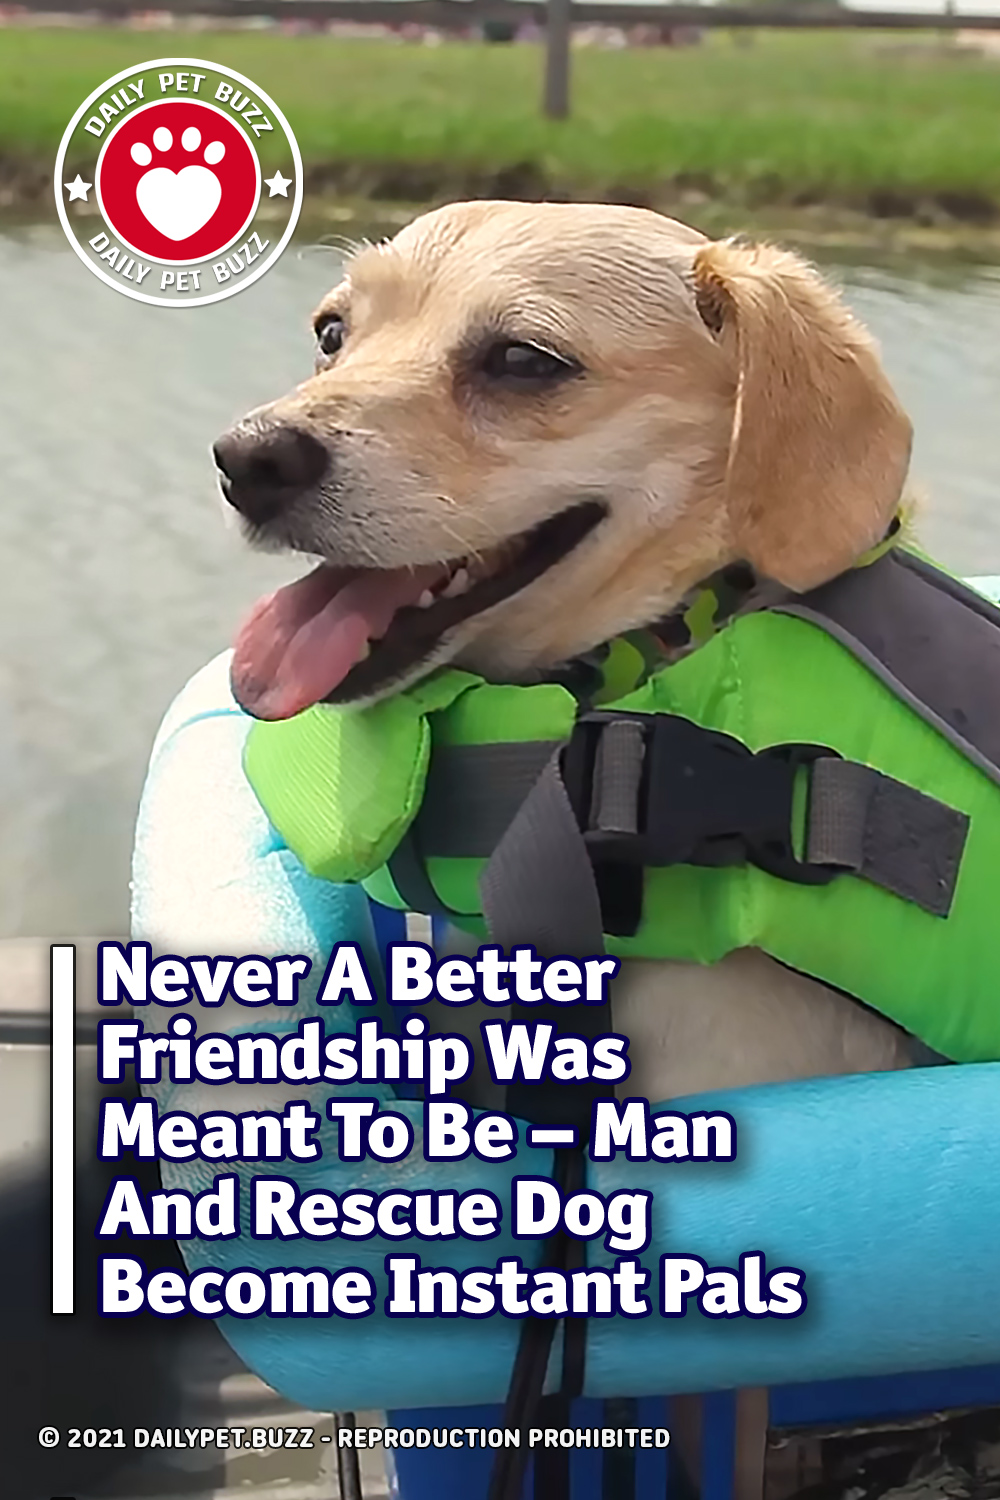 Never A Better Friendship Was Meant To Be – Man And Rescue Dog Become Instant Pals